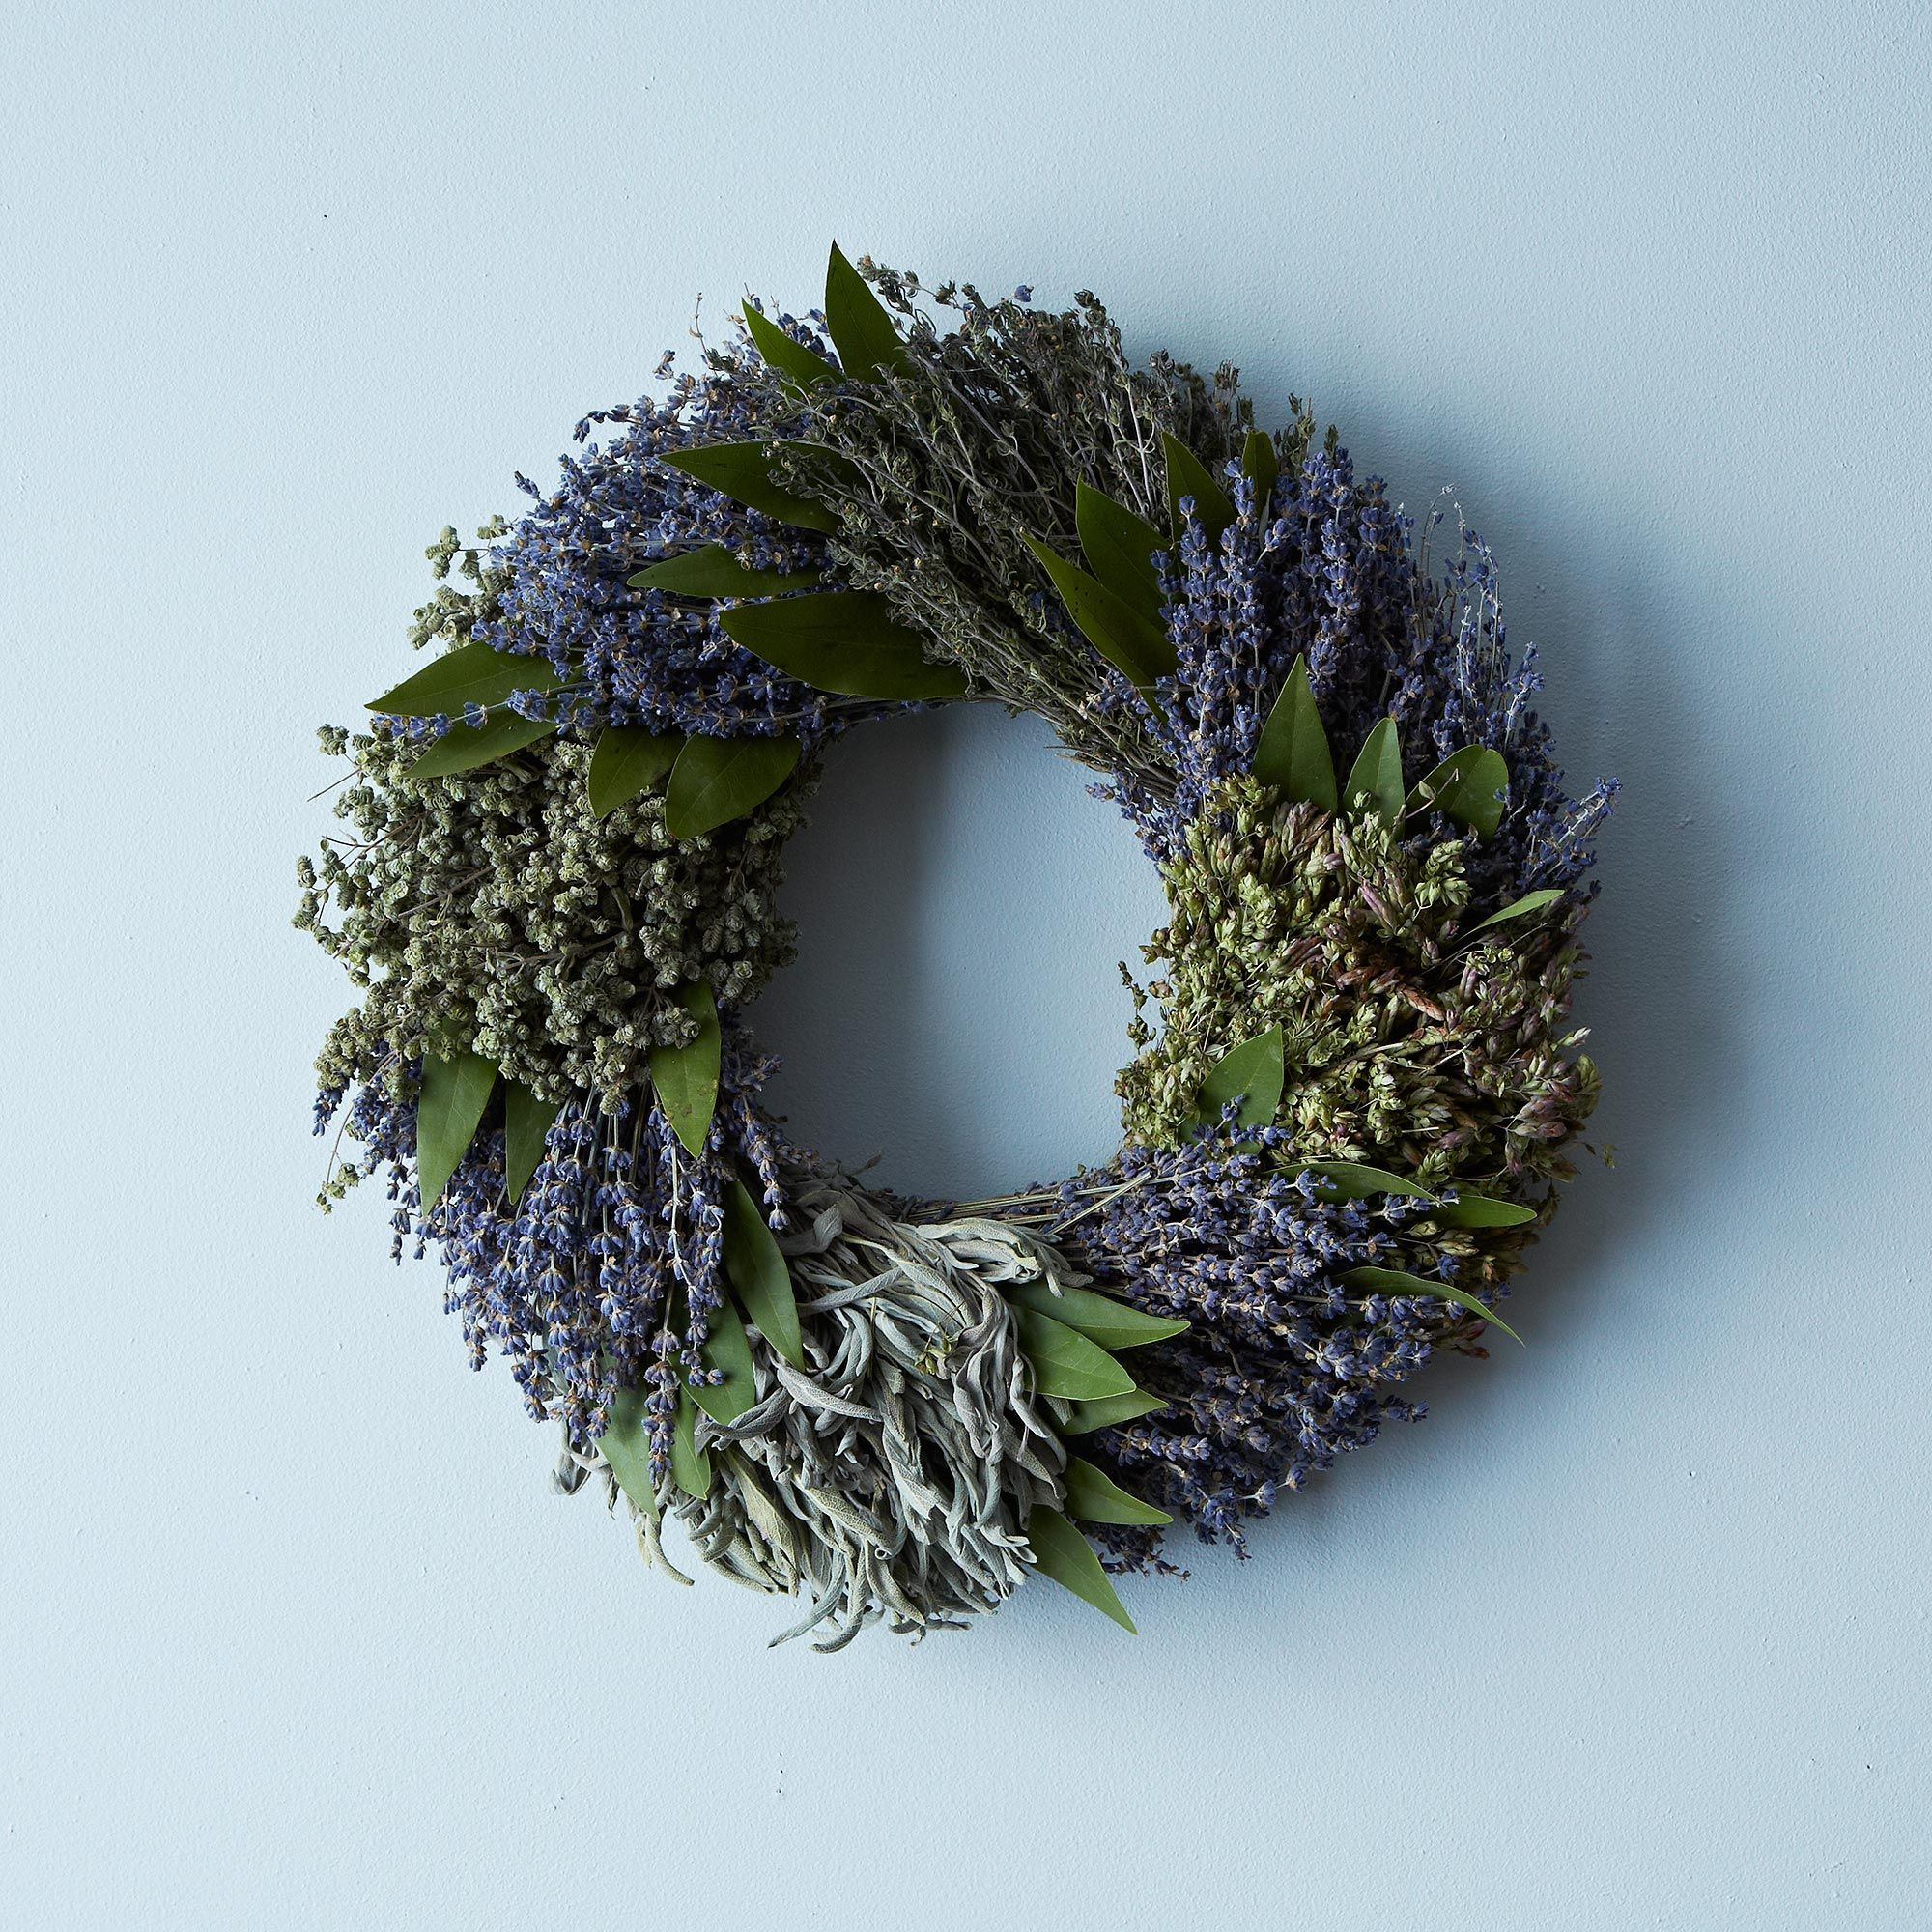 6b75a085 789d 42ce b363 c2efcaa1b4e5  2013 1106 creekside farms french herb wreath 184